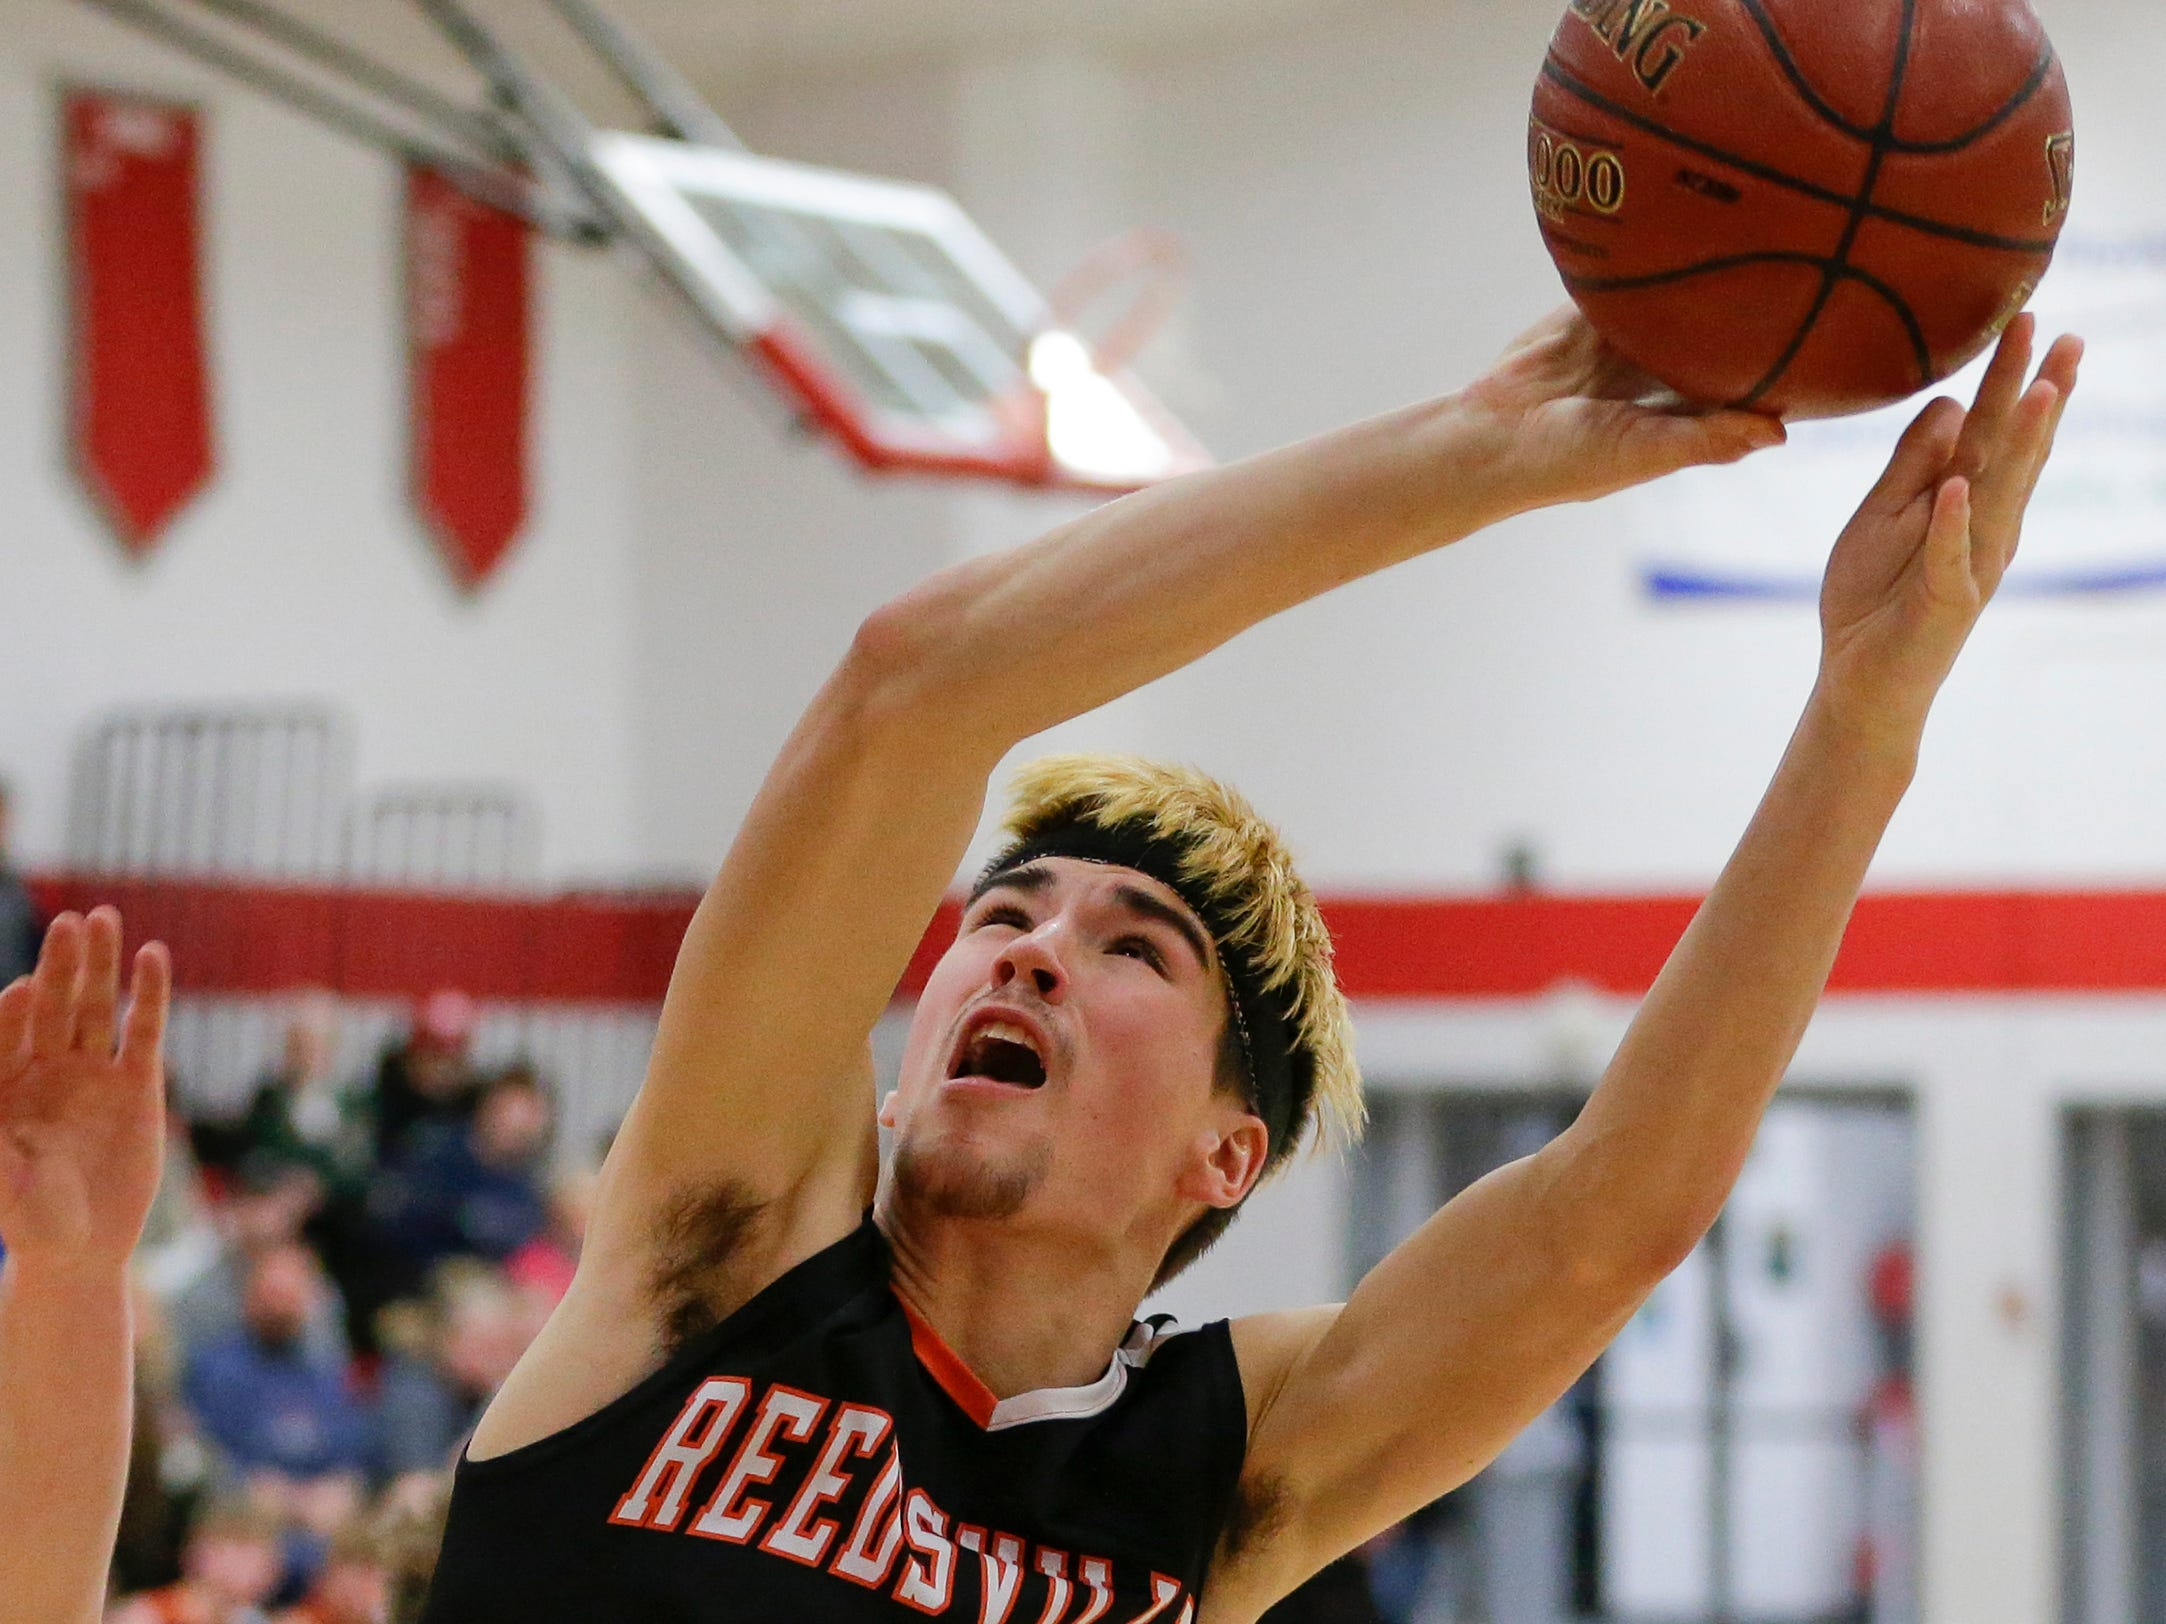 Reedsville's Noah Roffers shoots against Manitowoc Lutheran at Manitowoc Lutheran High School Thursday, December 20, 2018, in Manitowoc, Wis. Joshua Clark/USA TODAY NETWORK-Wisconsin